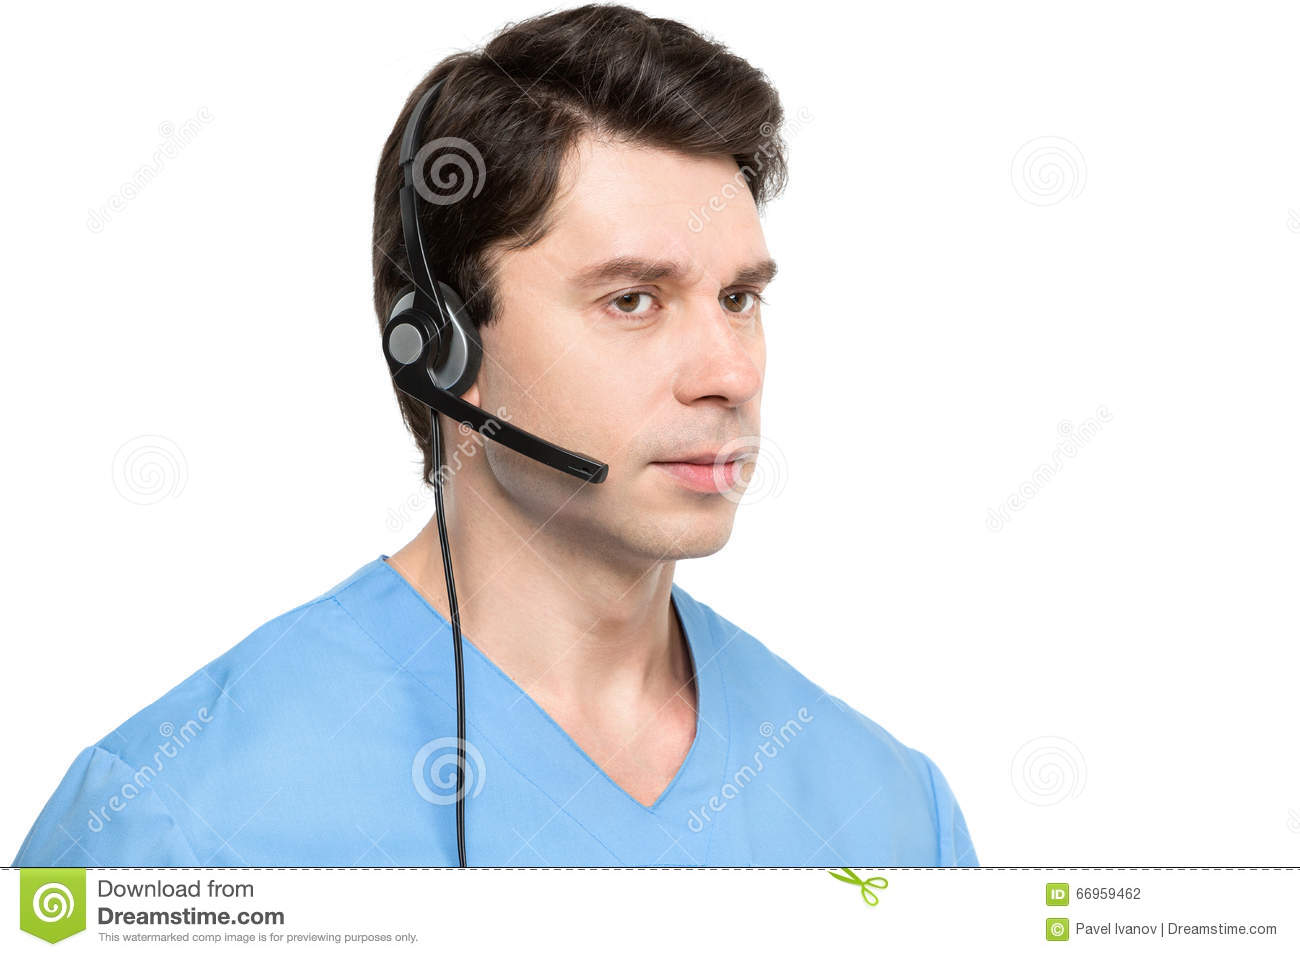 Medical call center operator man isolated.